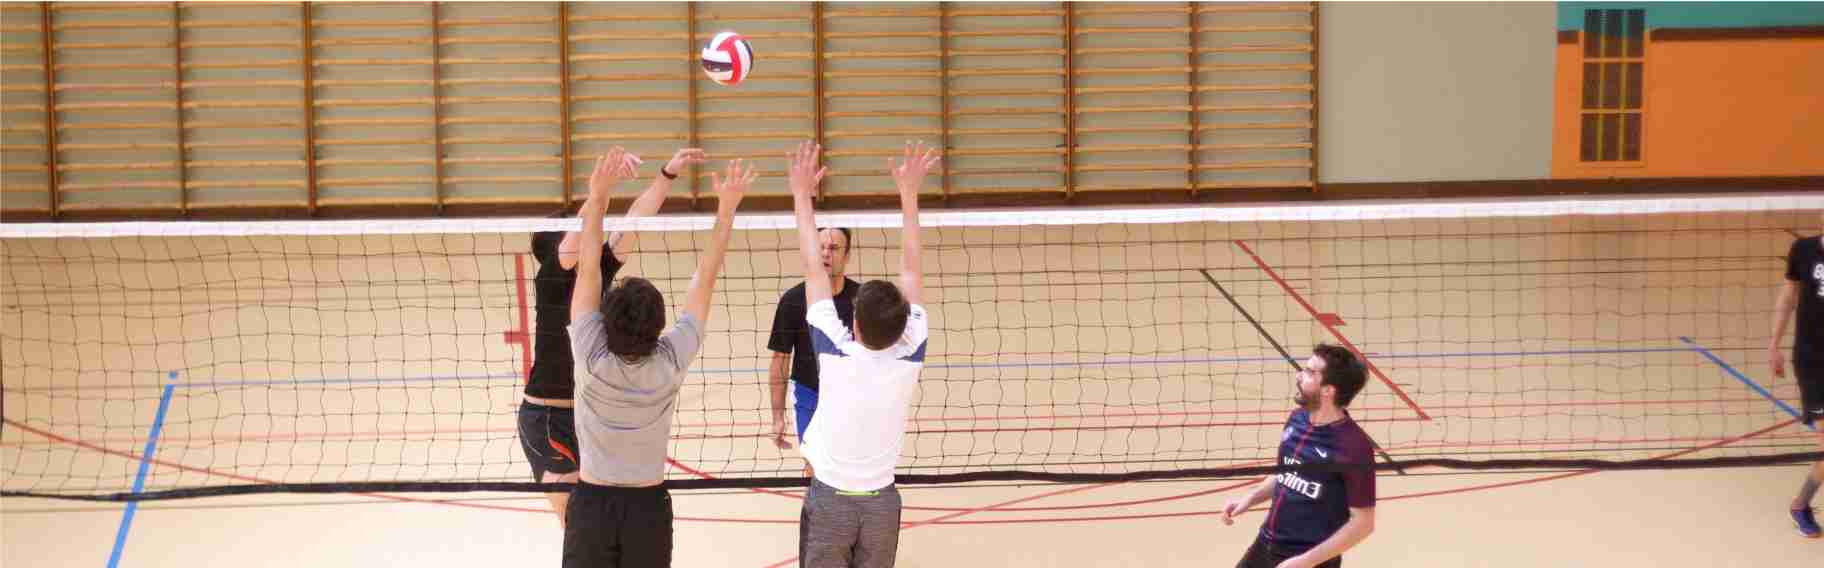 Image de Volleyball